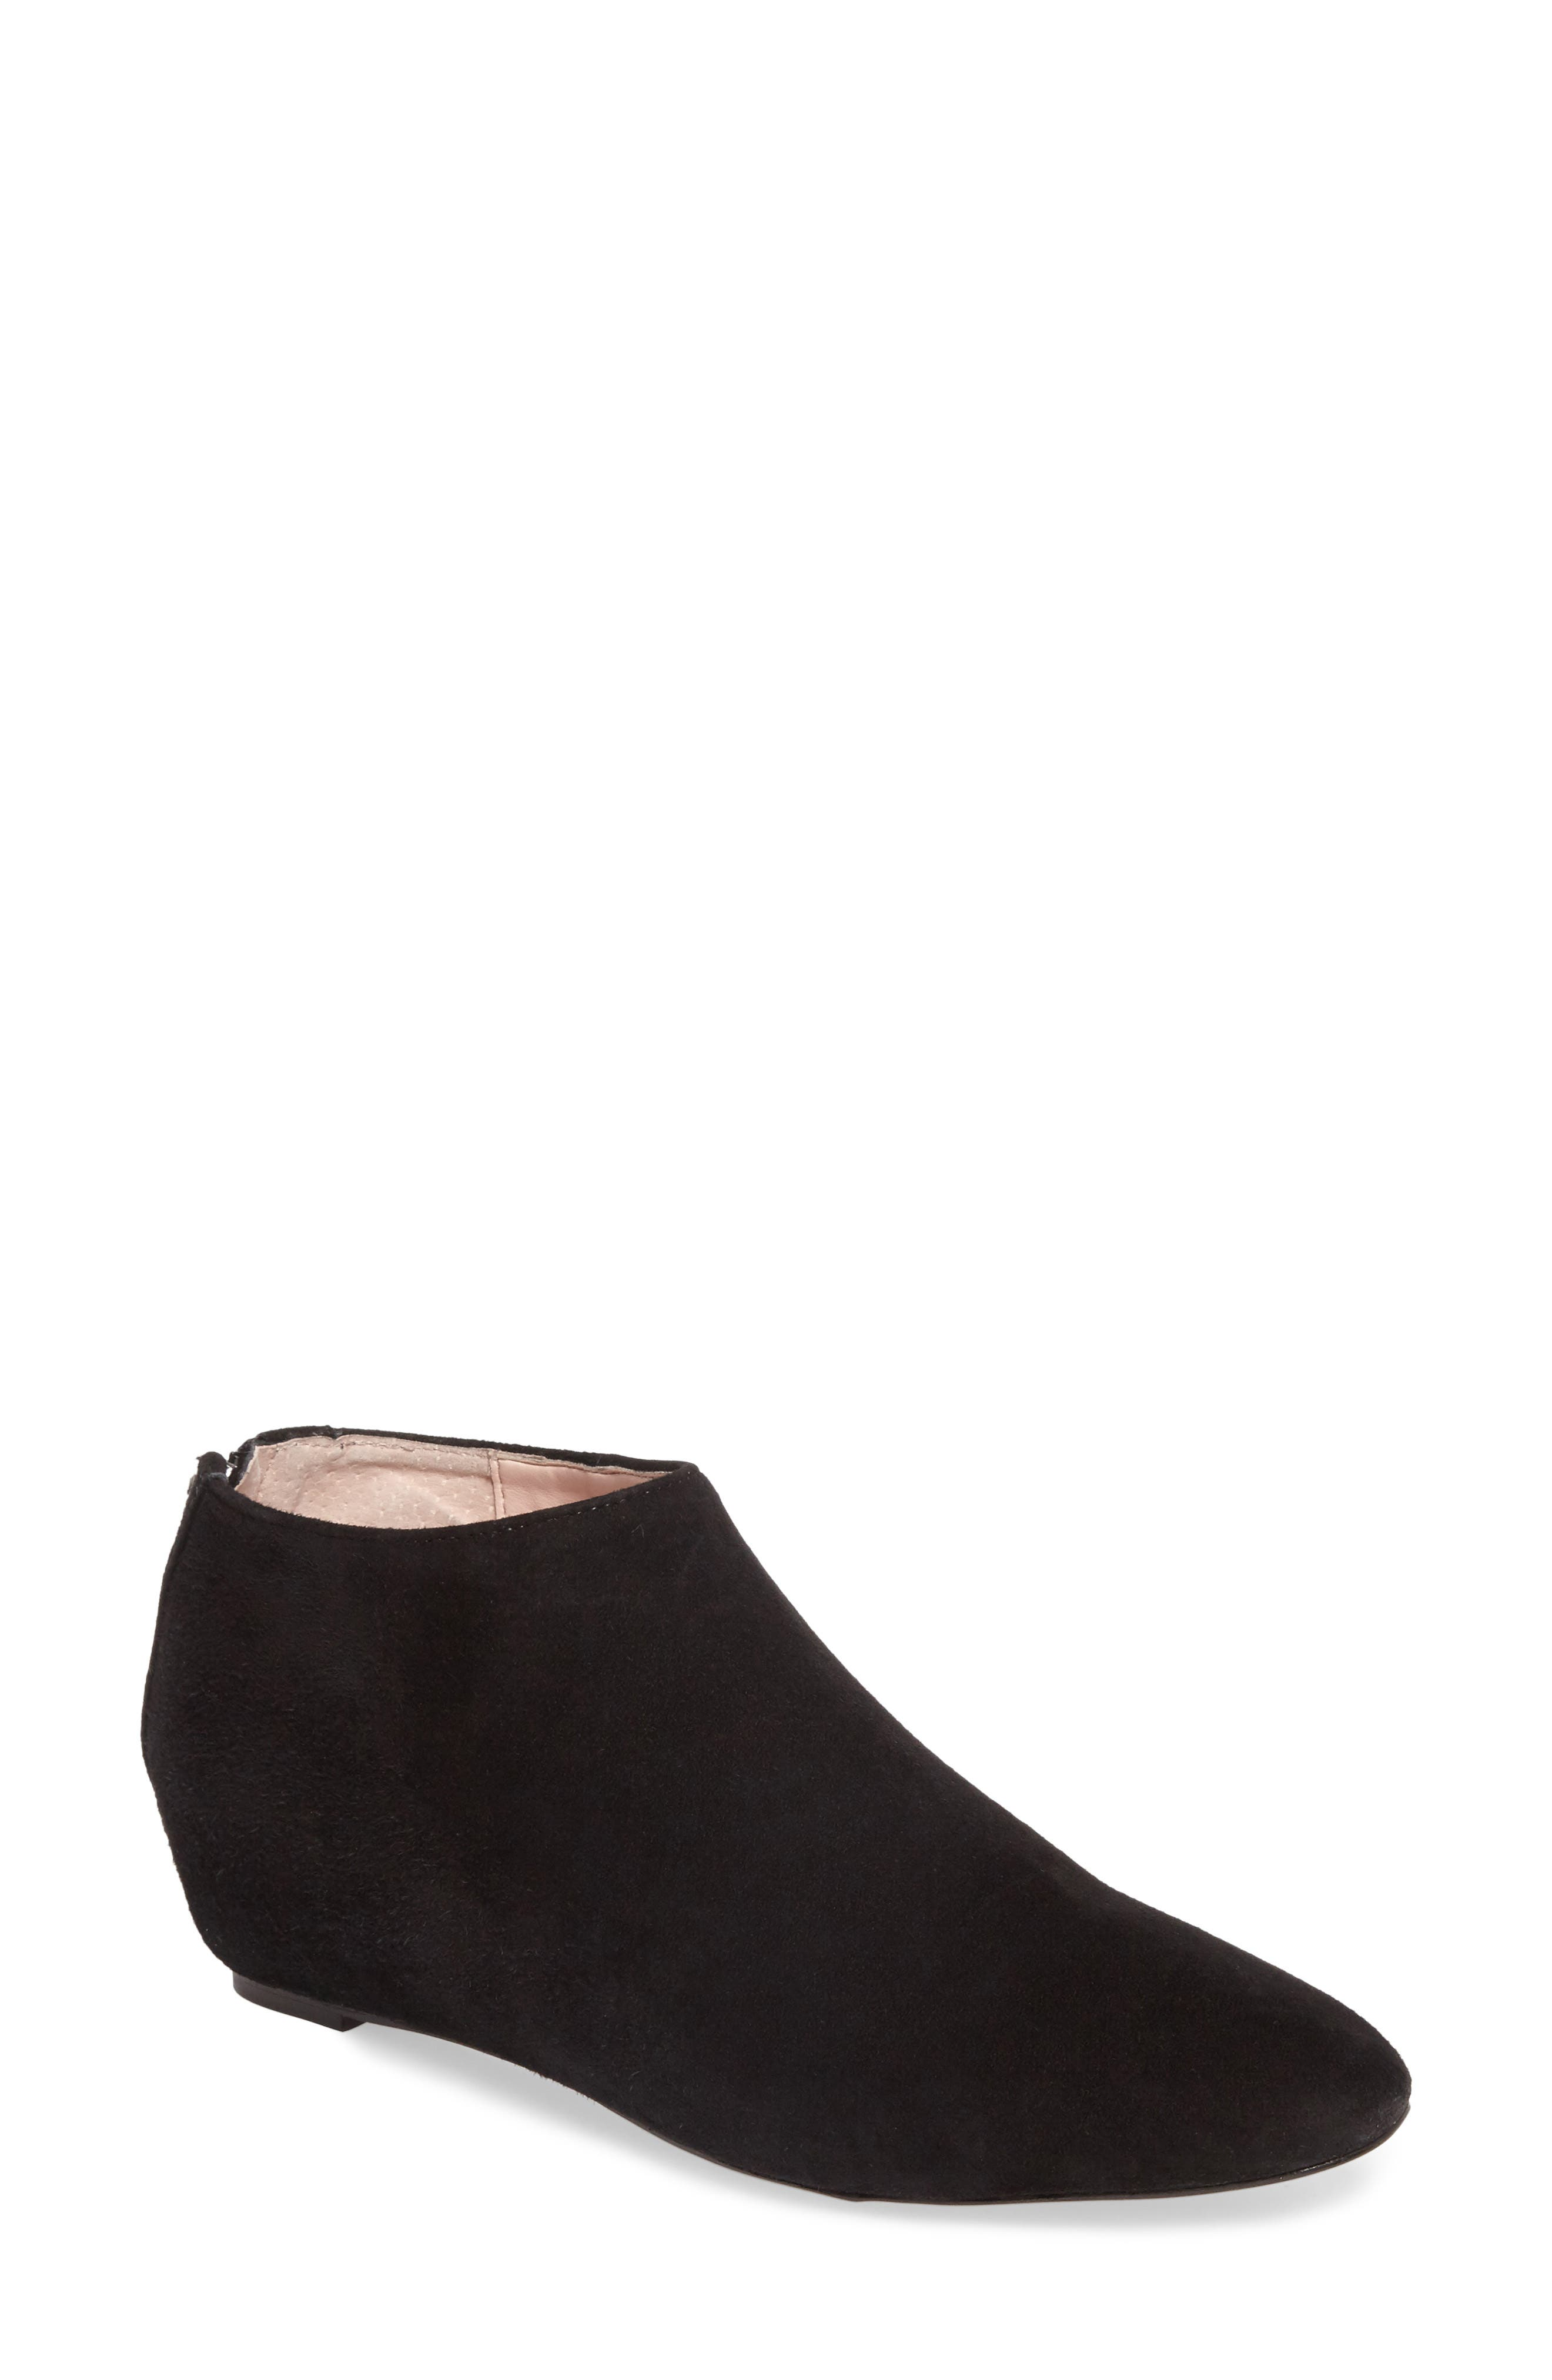 Aves Les Filles Beatrice Ankle Boot,                         Main,                         color,